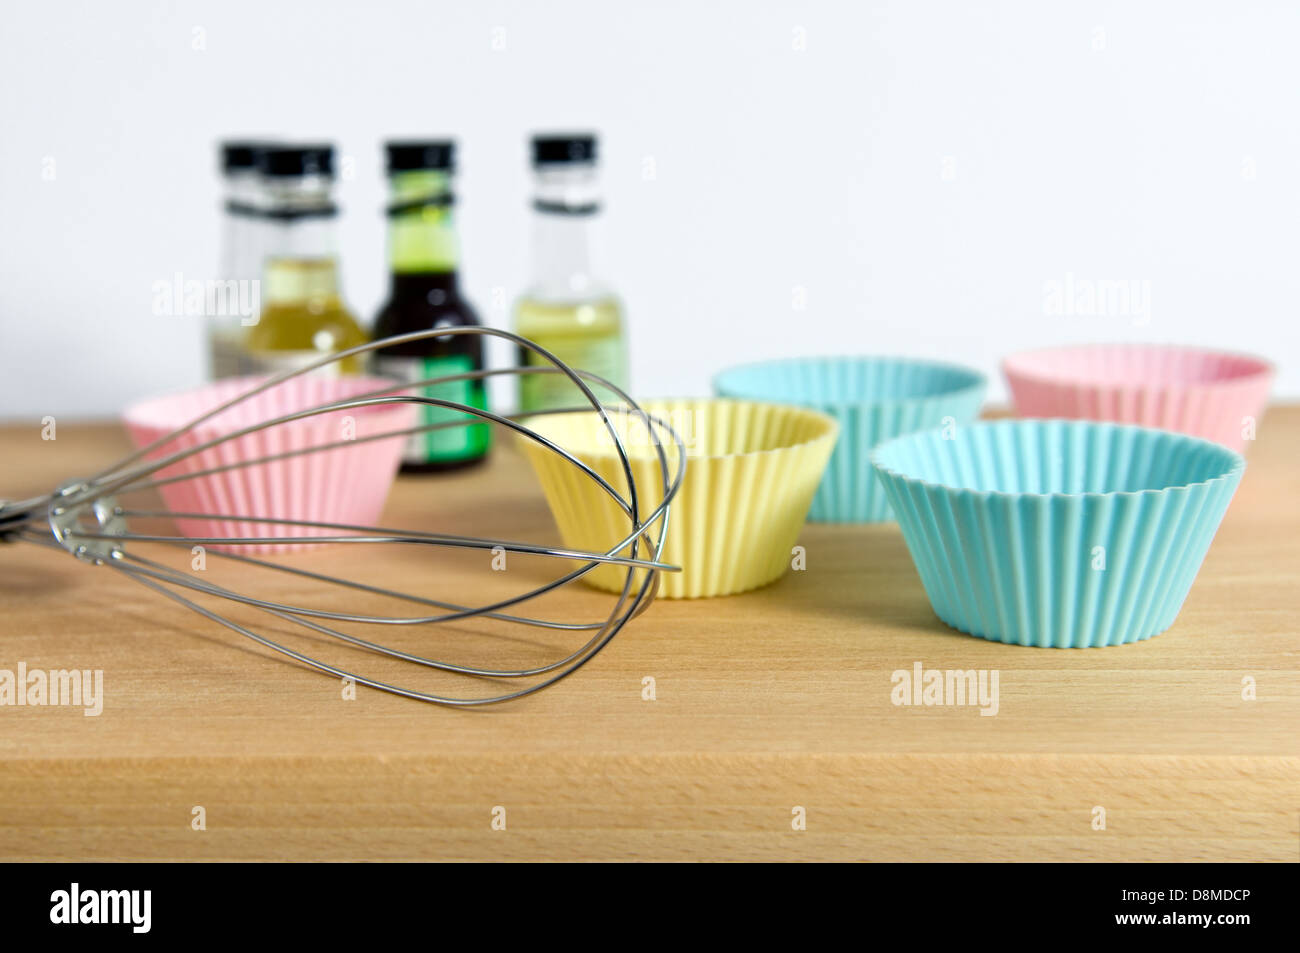 Silicone cup cake wrappers with food colouring and whisk on wooden chopping board - Stock Image